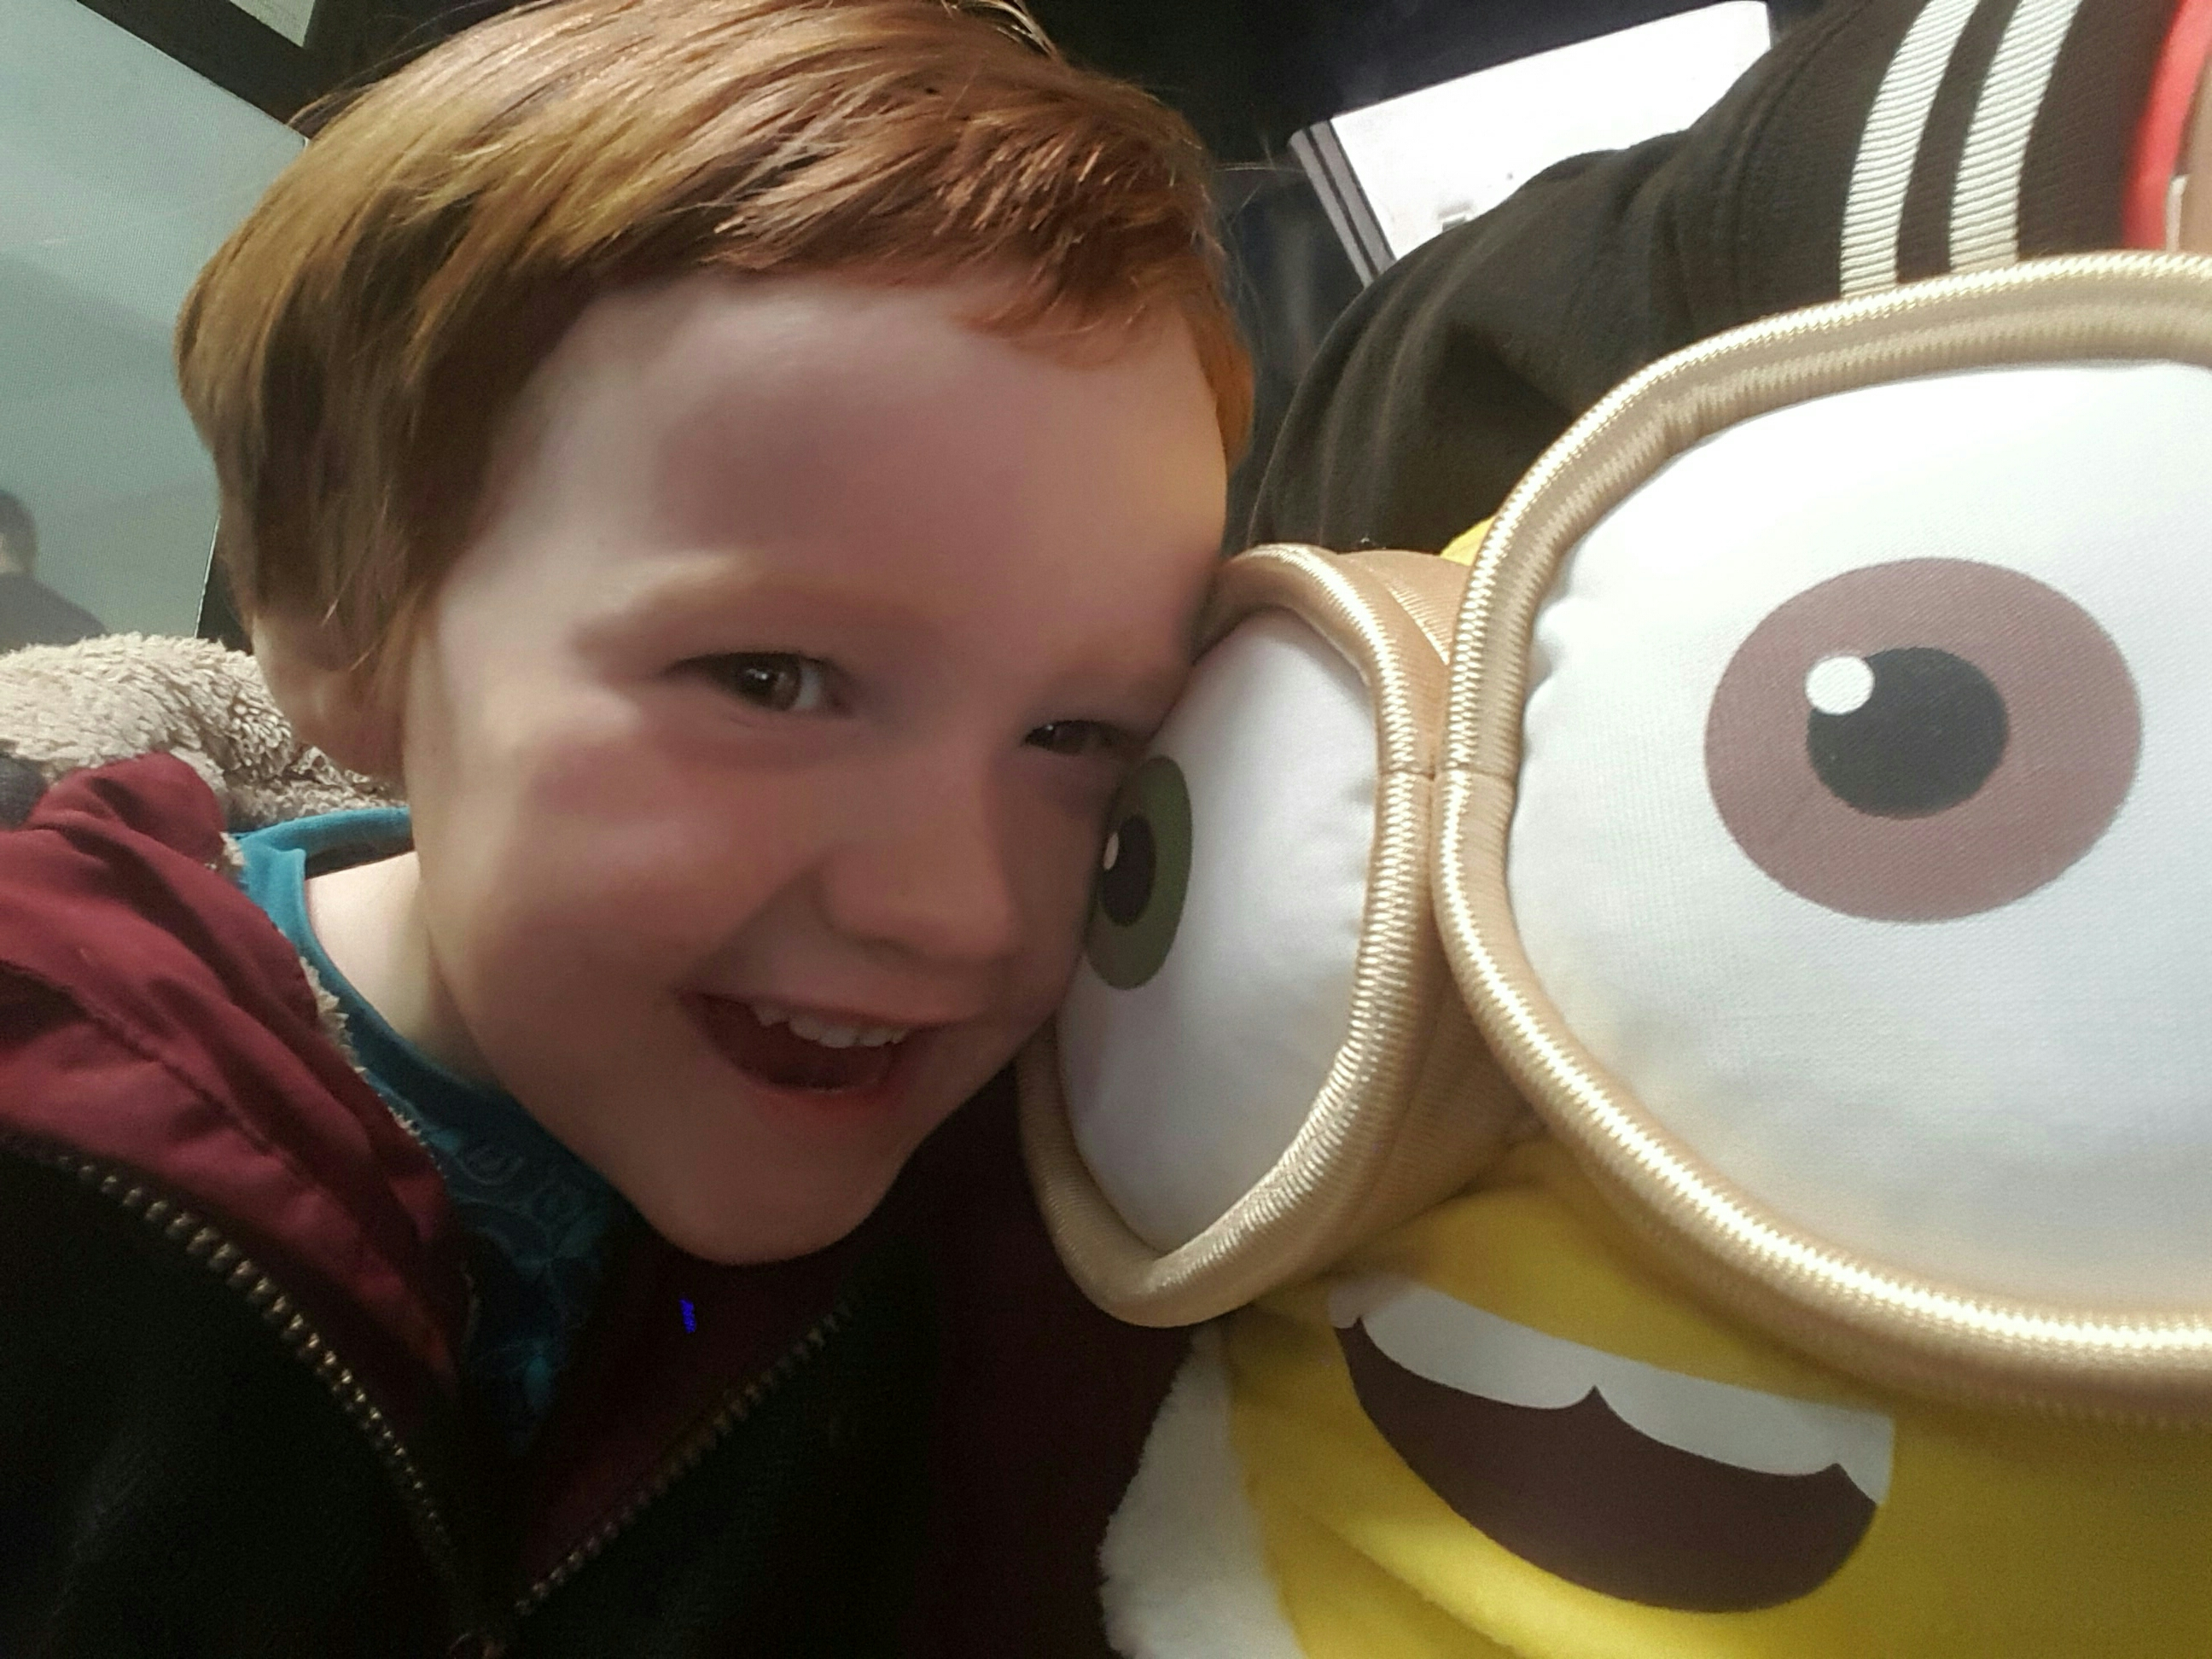 Hugging the Minion